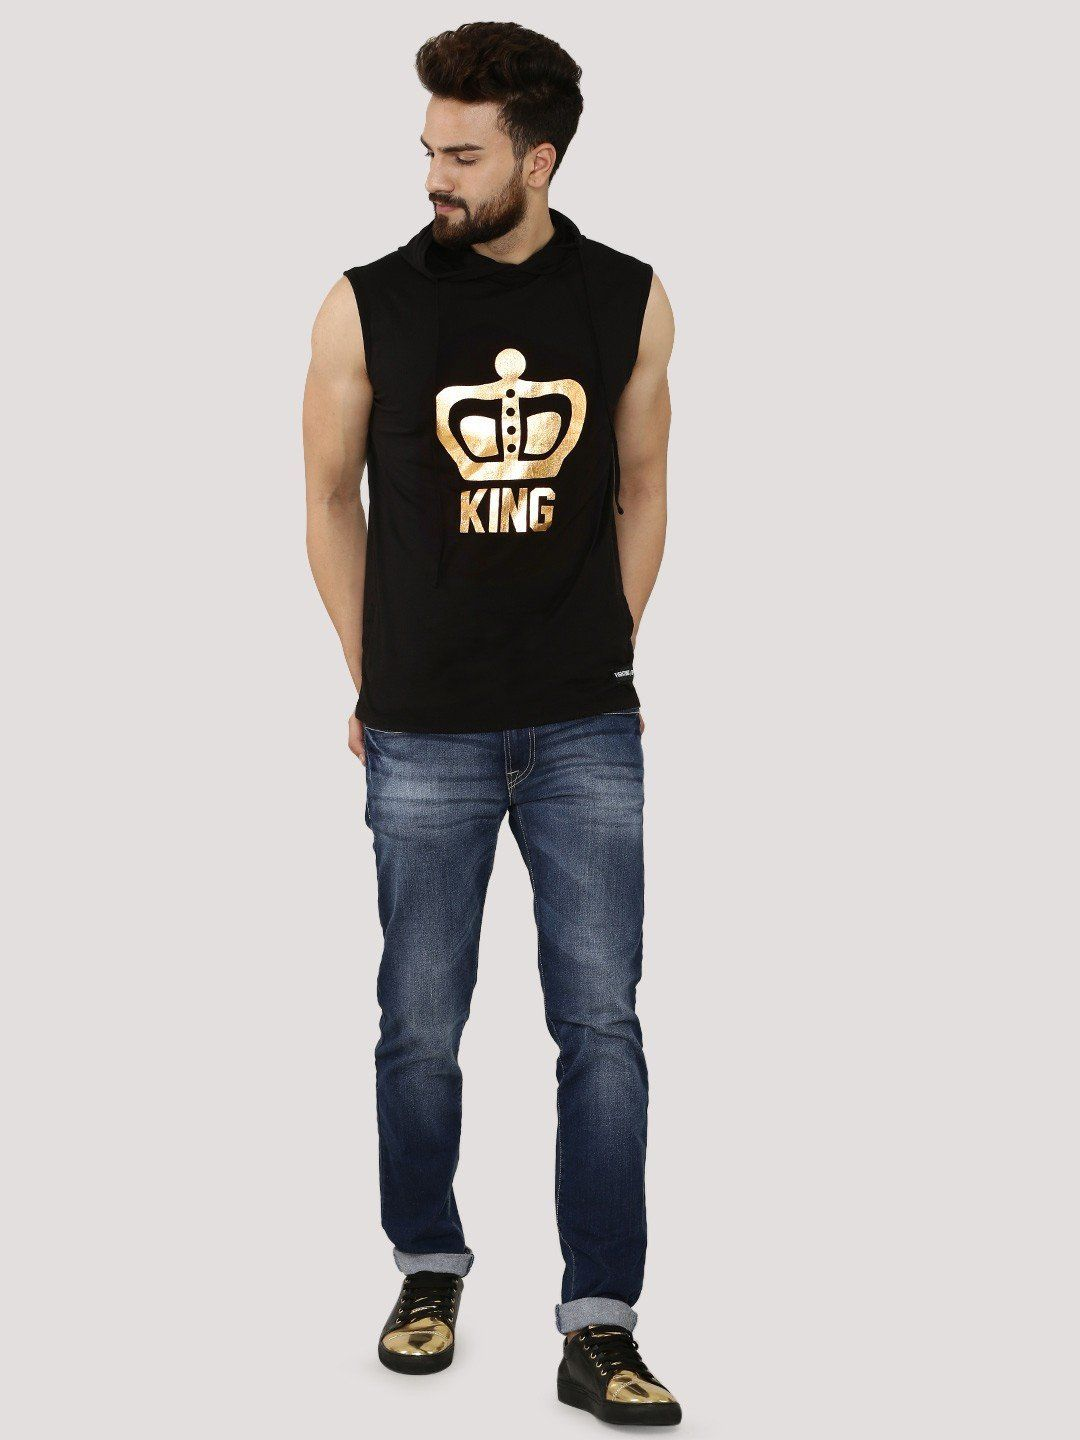 KING Black Sleeveless T-Shirt With Hood - Fighting Fame  - 4